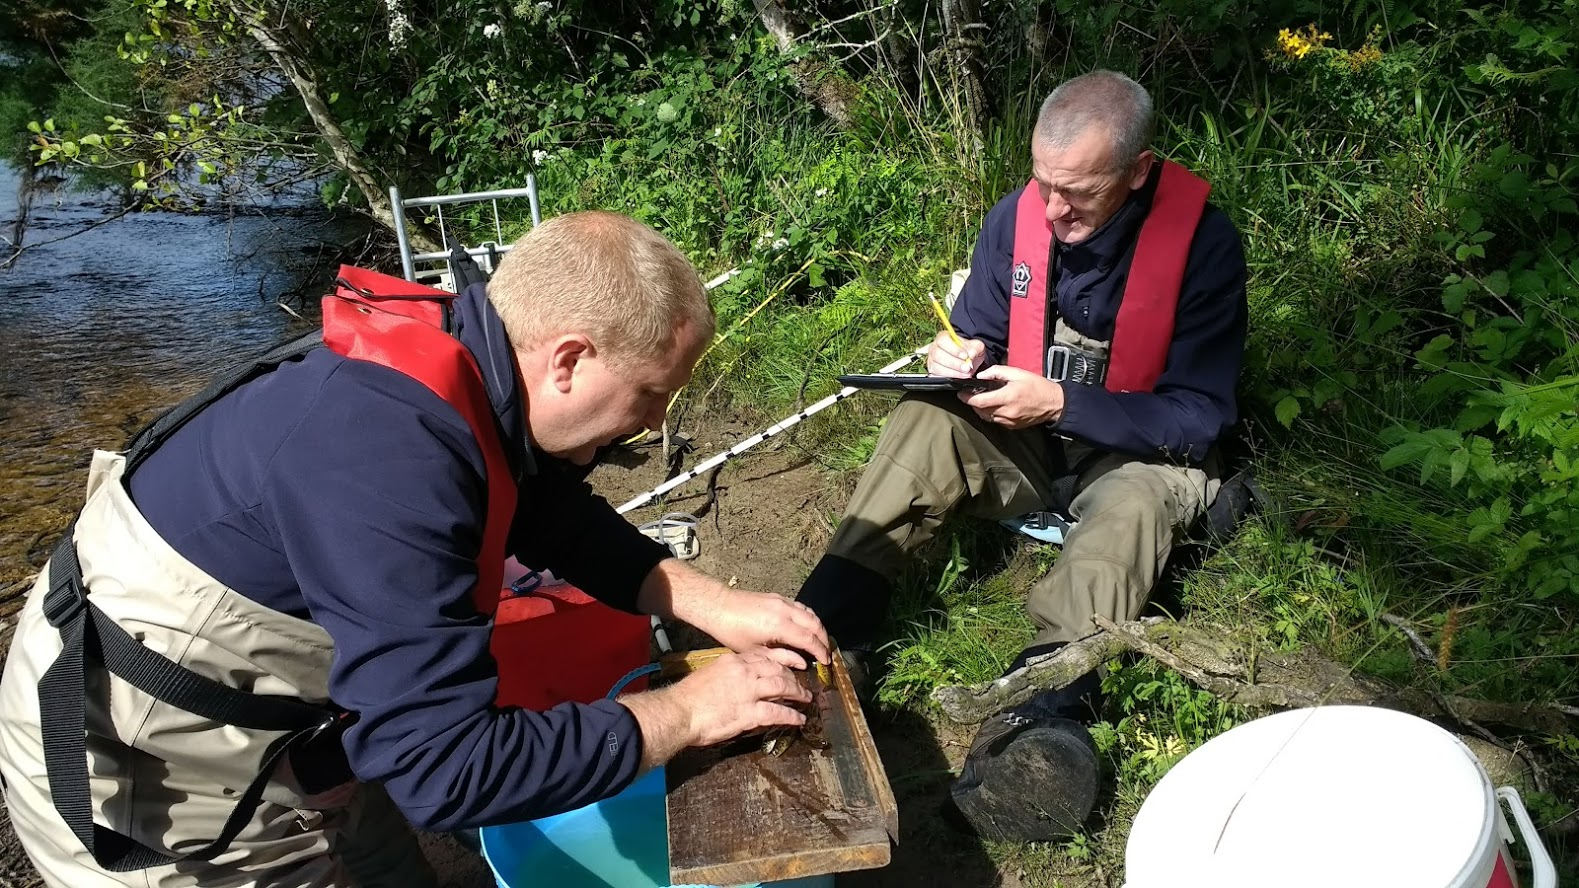 Ness and Beauly Fisheries Trust biologists processing fish during an electrofishing survey